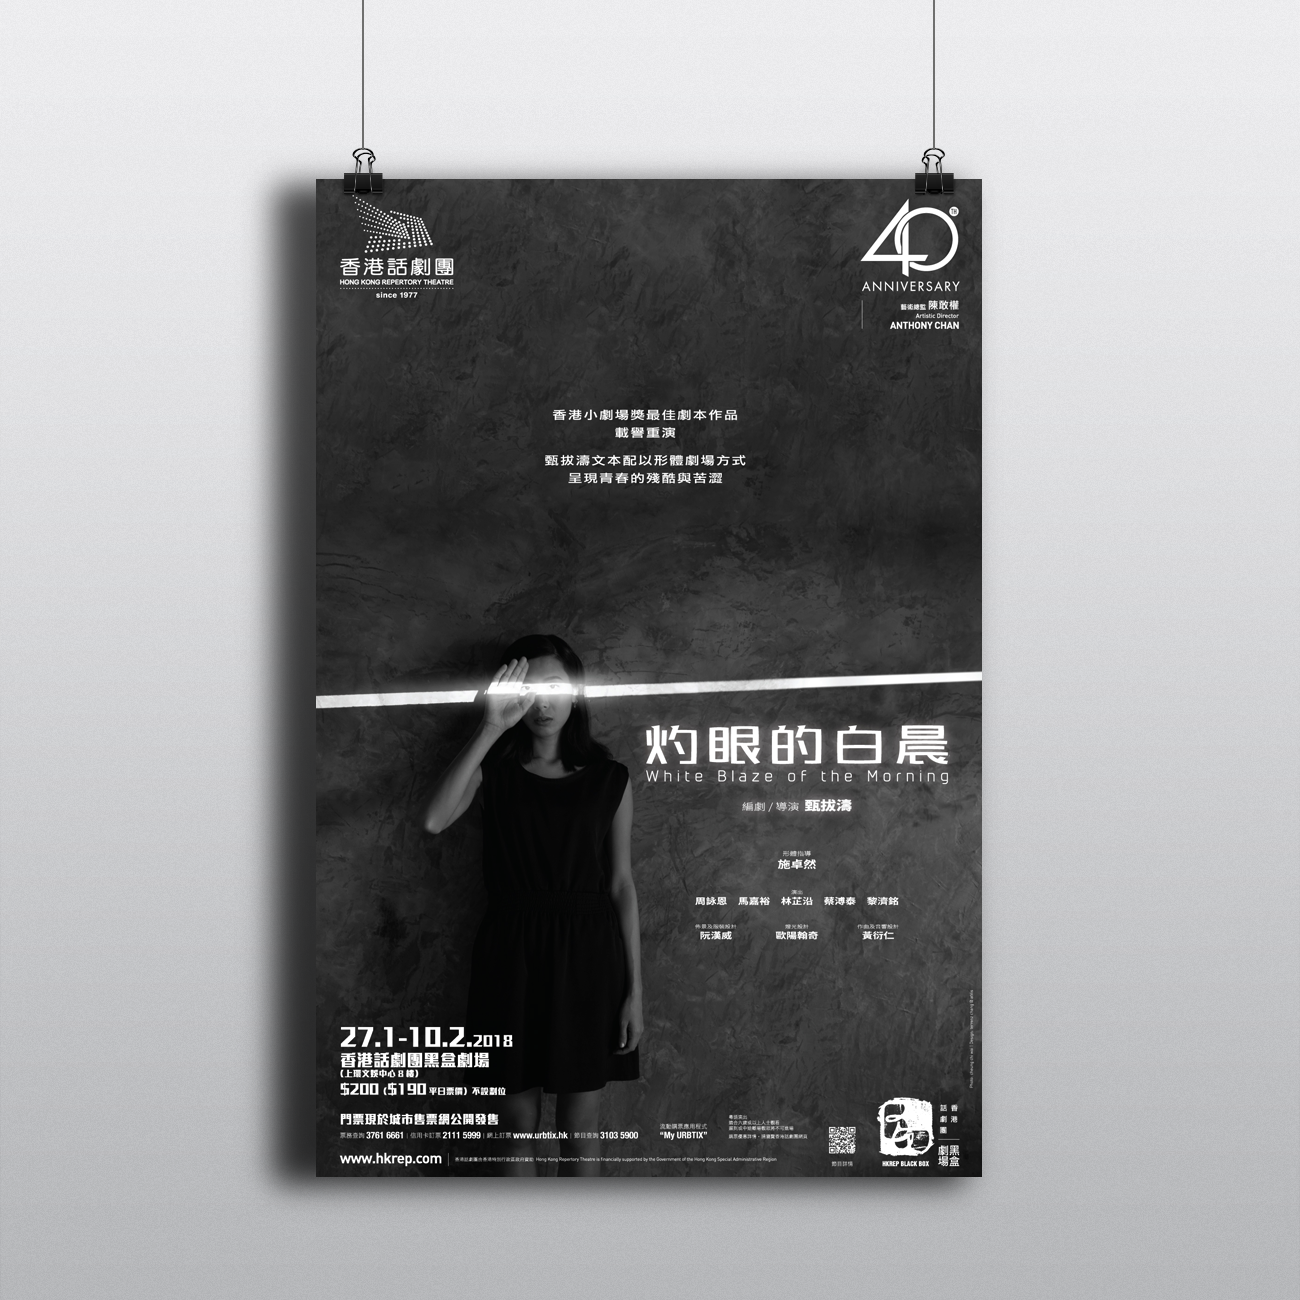 Hong Kong Repertory Theatre Blackbox Production - White Blaze in the Morning